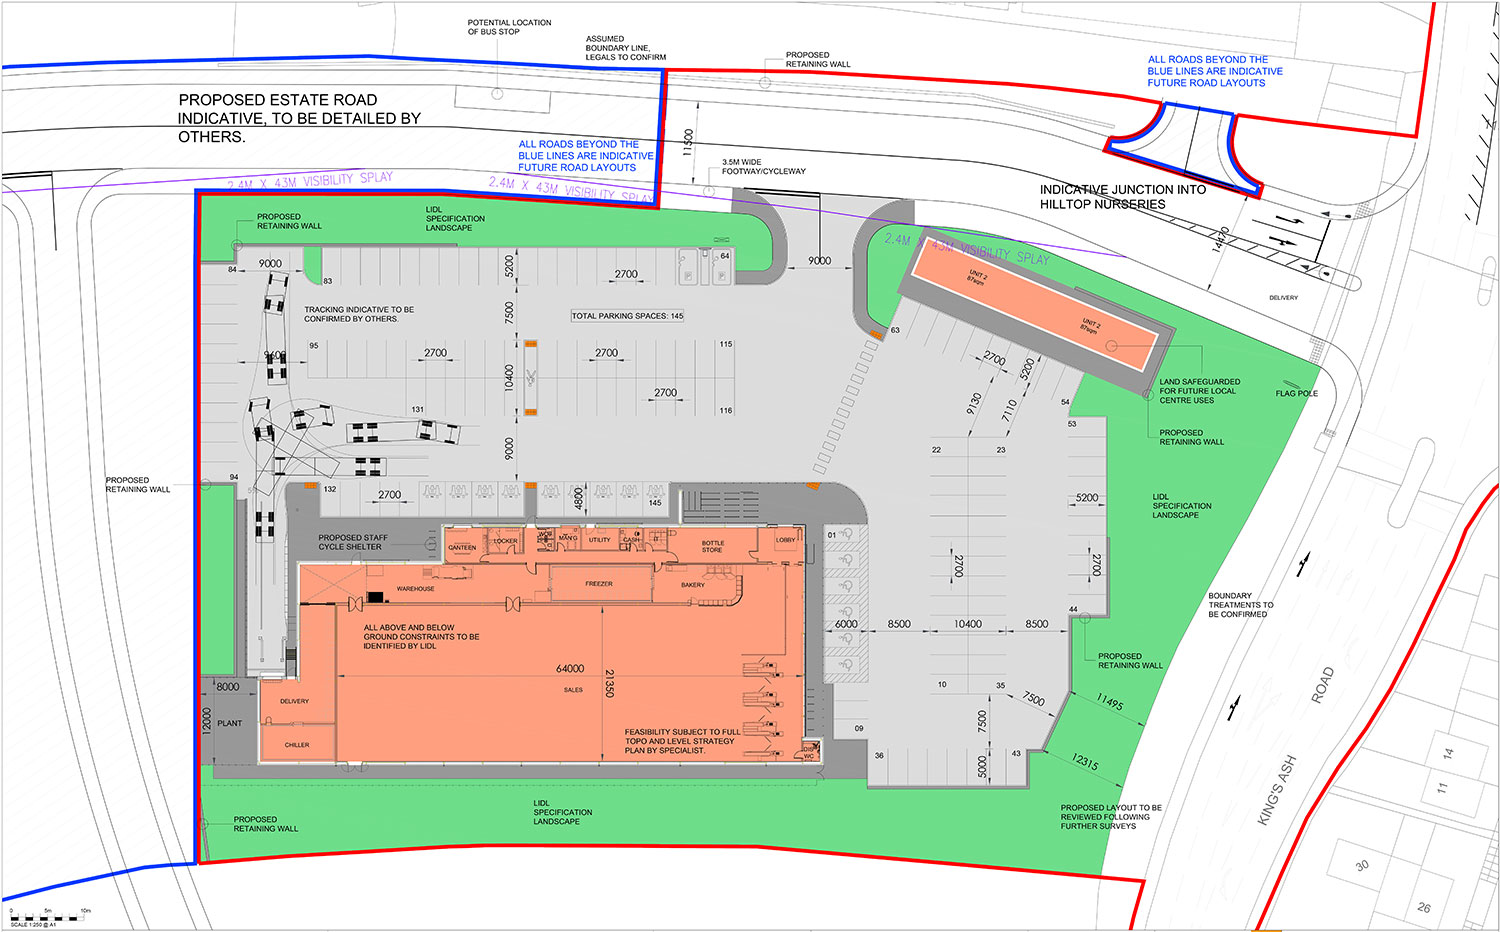 Lidl Kings Ash Road, Paignton – Proposed Site Layout